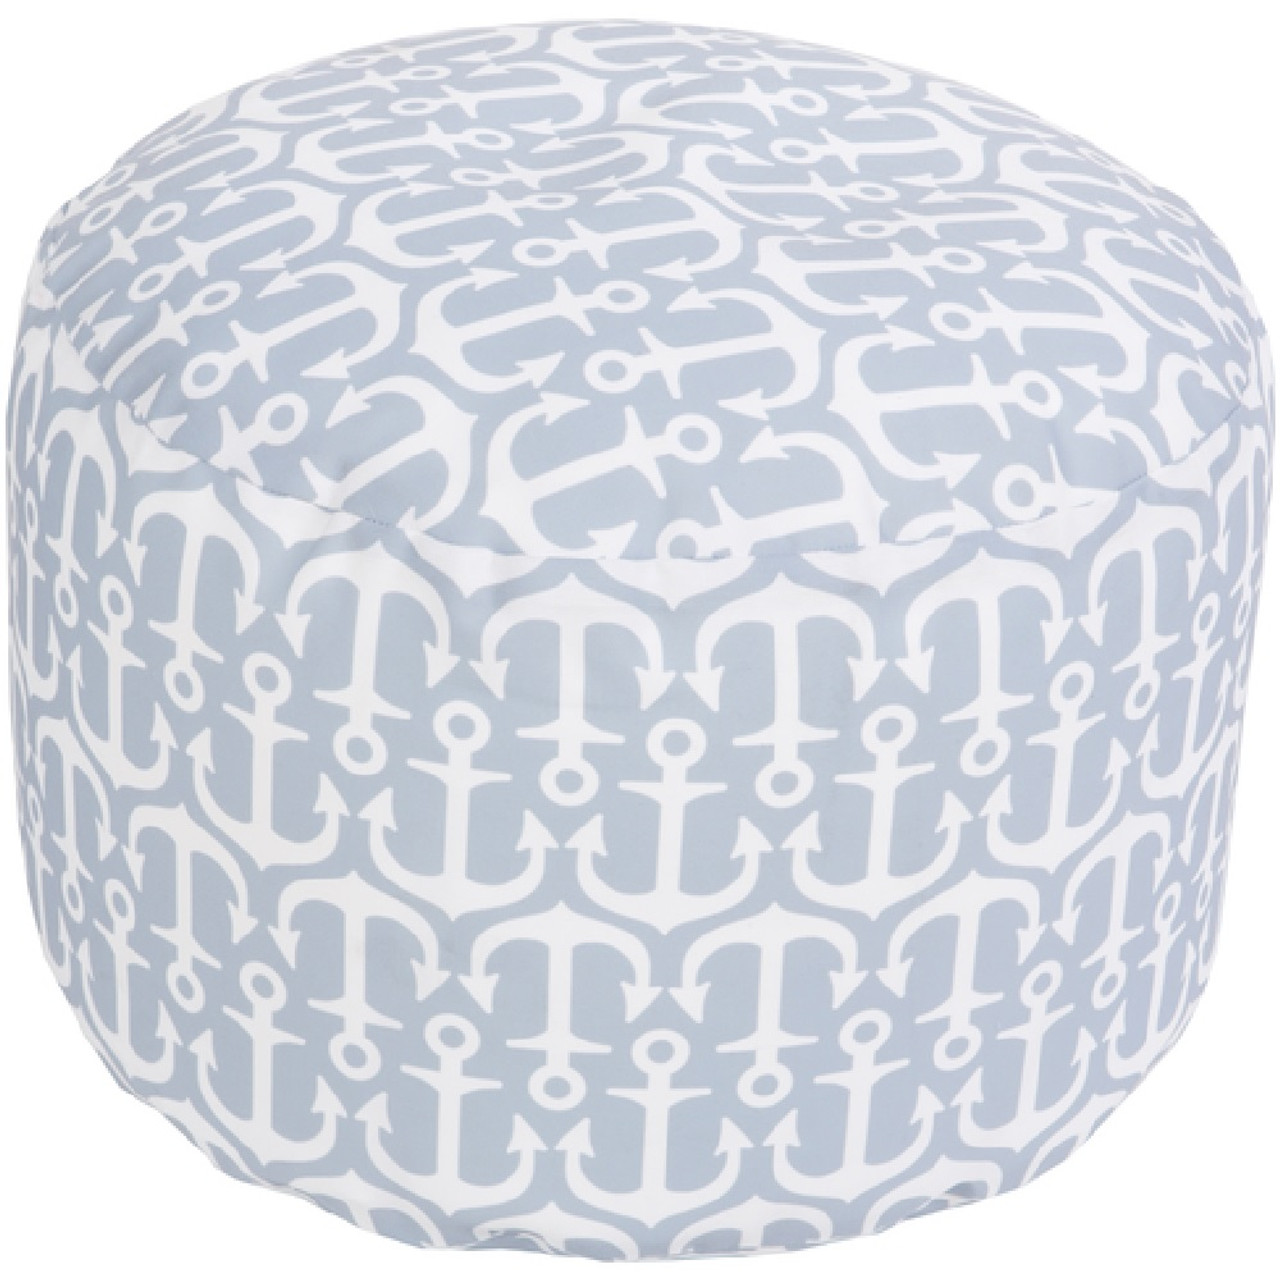 13 light gray ivory anchor away round outdoor patio for Ulani outdoor round pouf ottoman